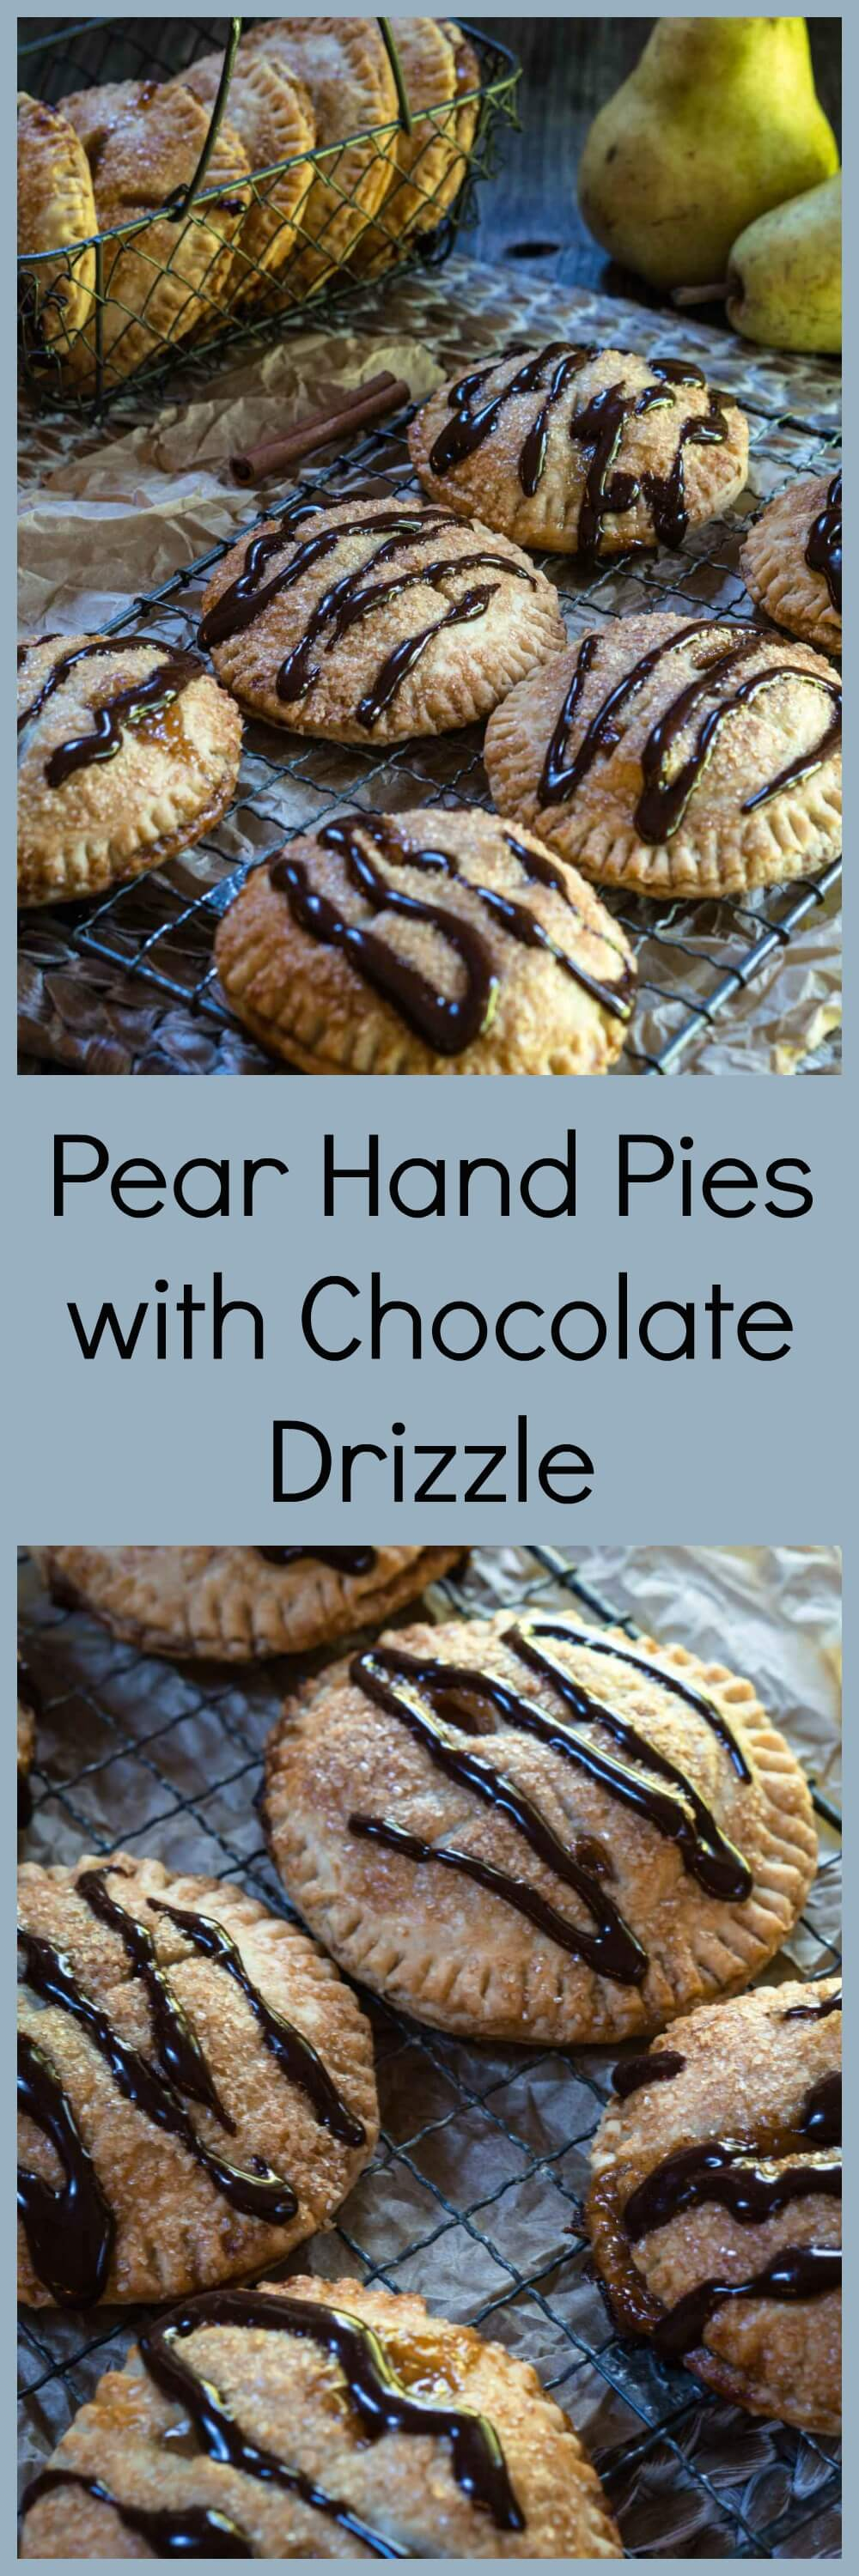 Pear Hand Pies with Dark Chocolate Drizzle are packed with pears that have been baked in a sauce of brown sugar and cinnamon between a flaky buttery crust. The drizzle of dark chocolate gives this pie a deeper richness. | HostessAtHeart.com